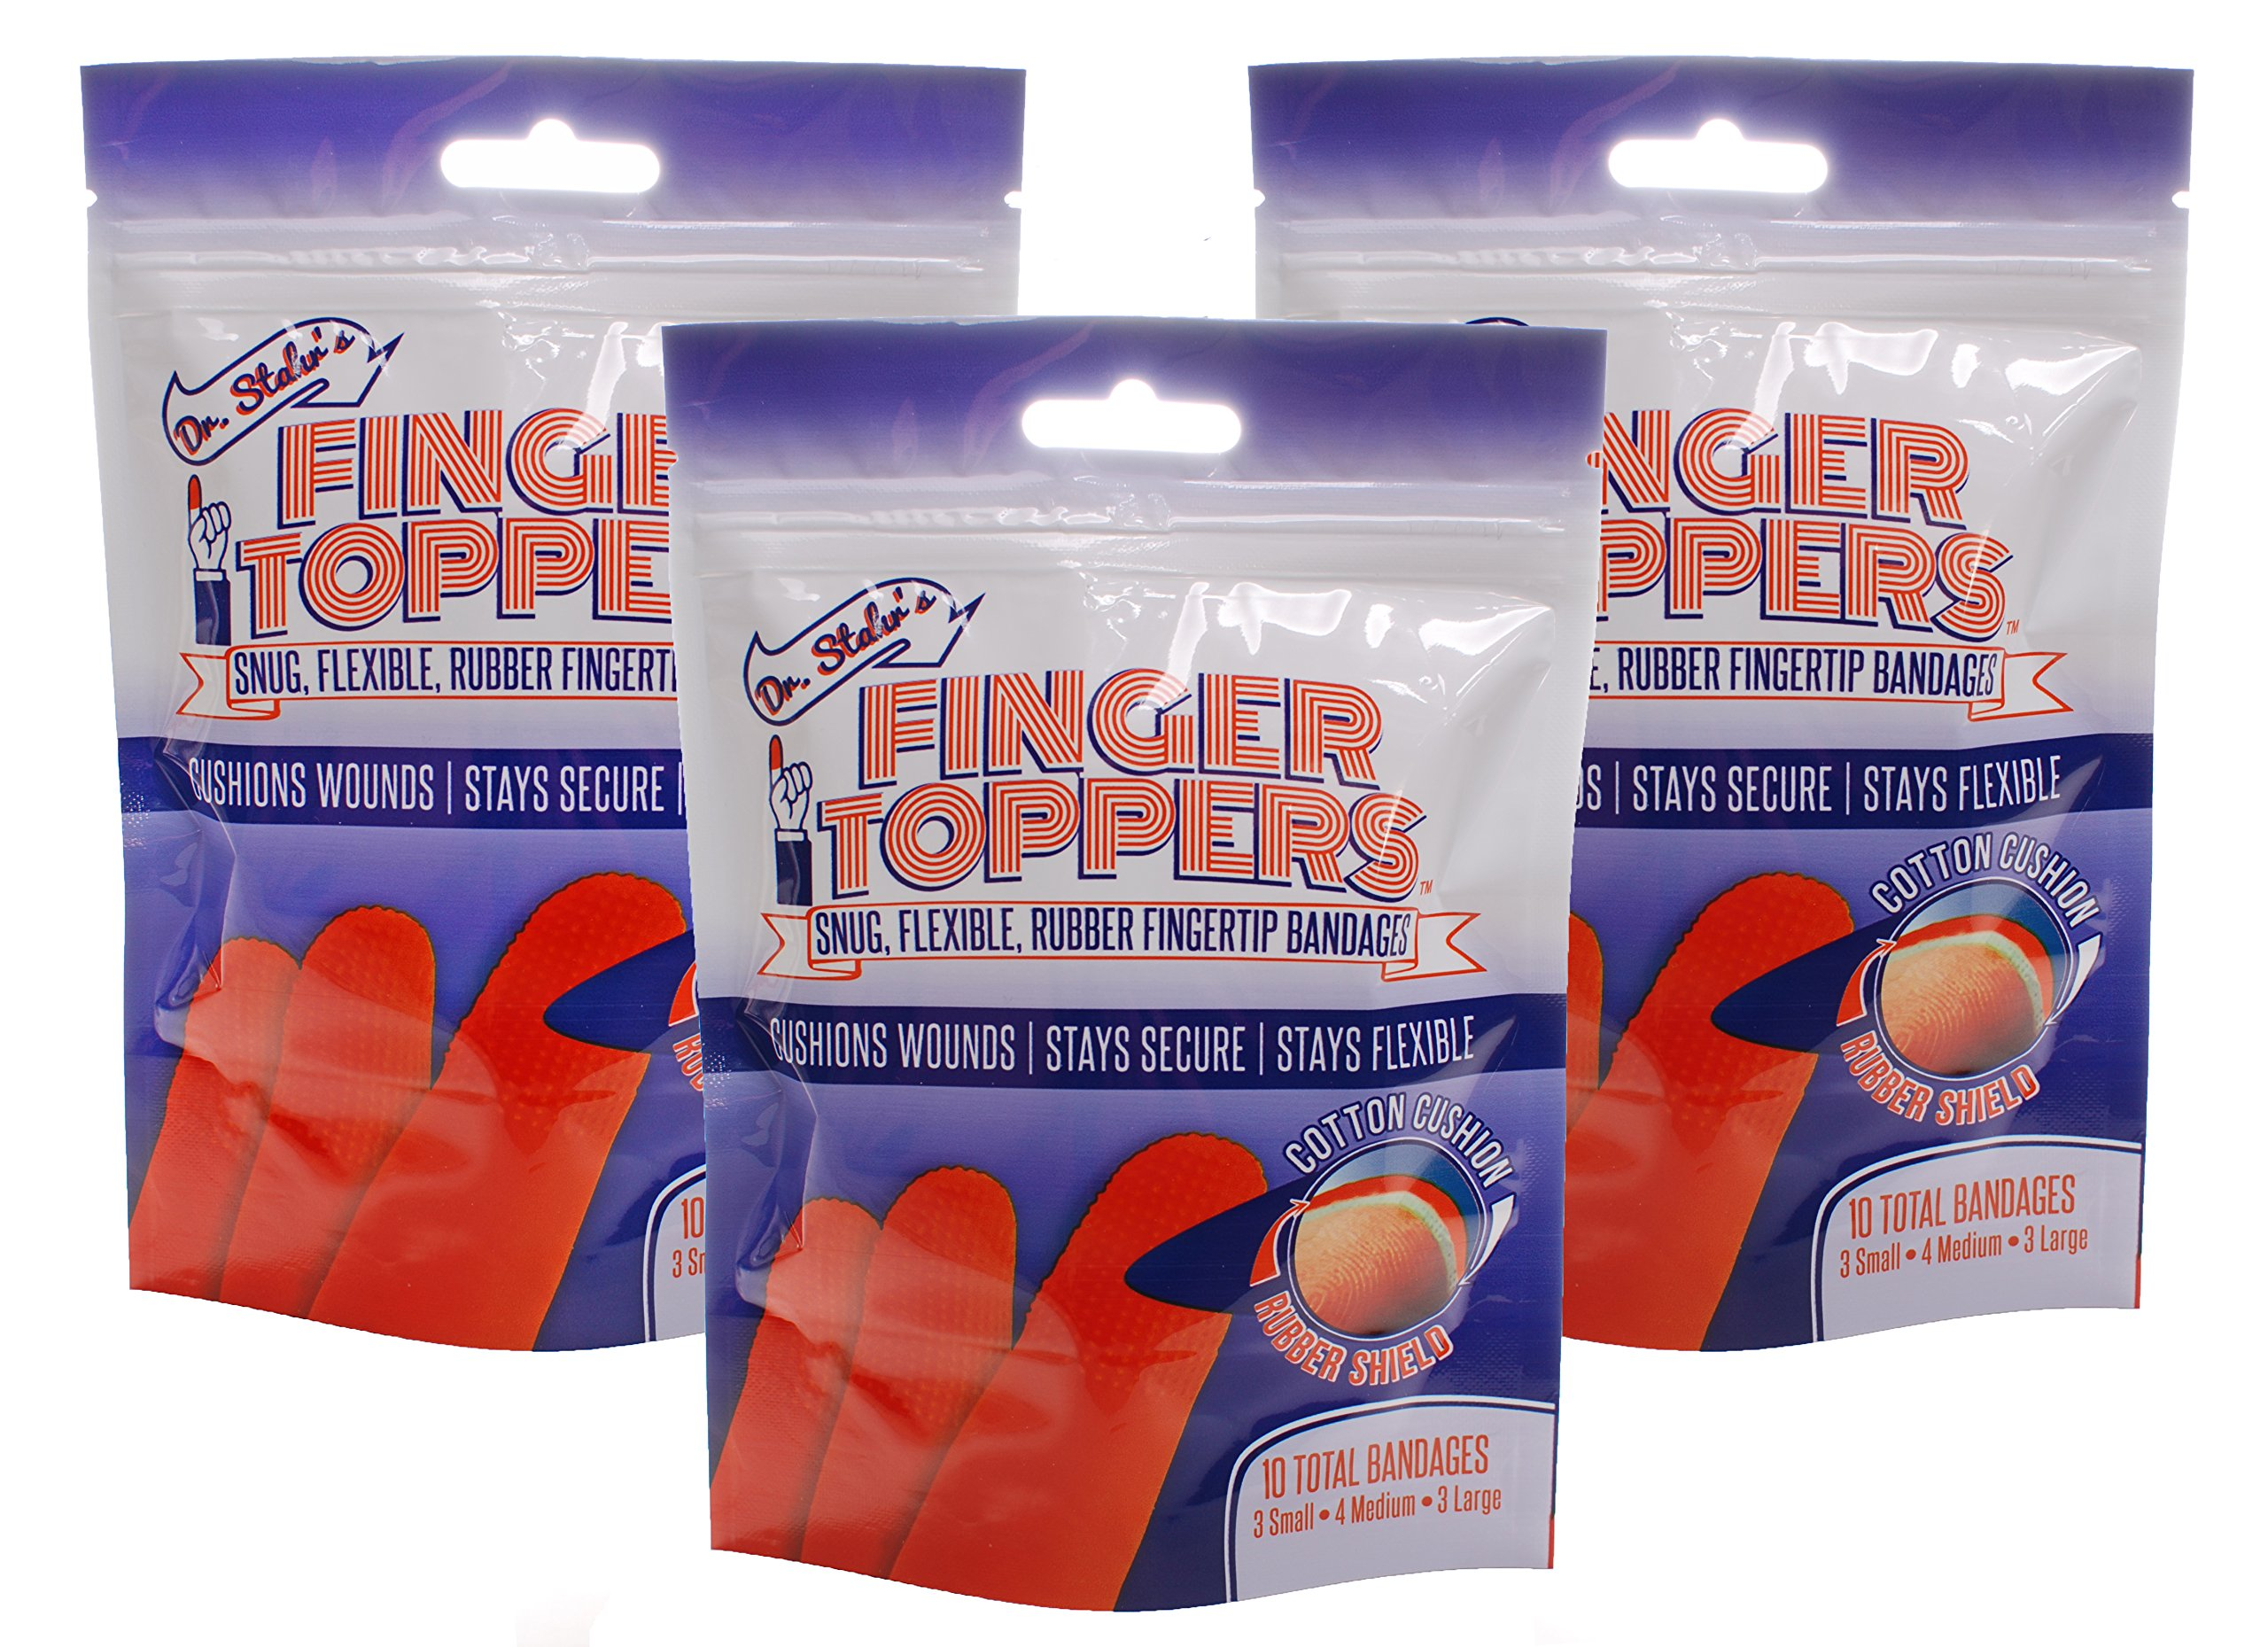 3 Bags of FingerToppers bandages (10 individually wrapped bandages per bag)